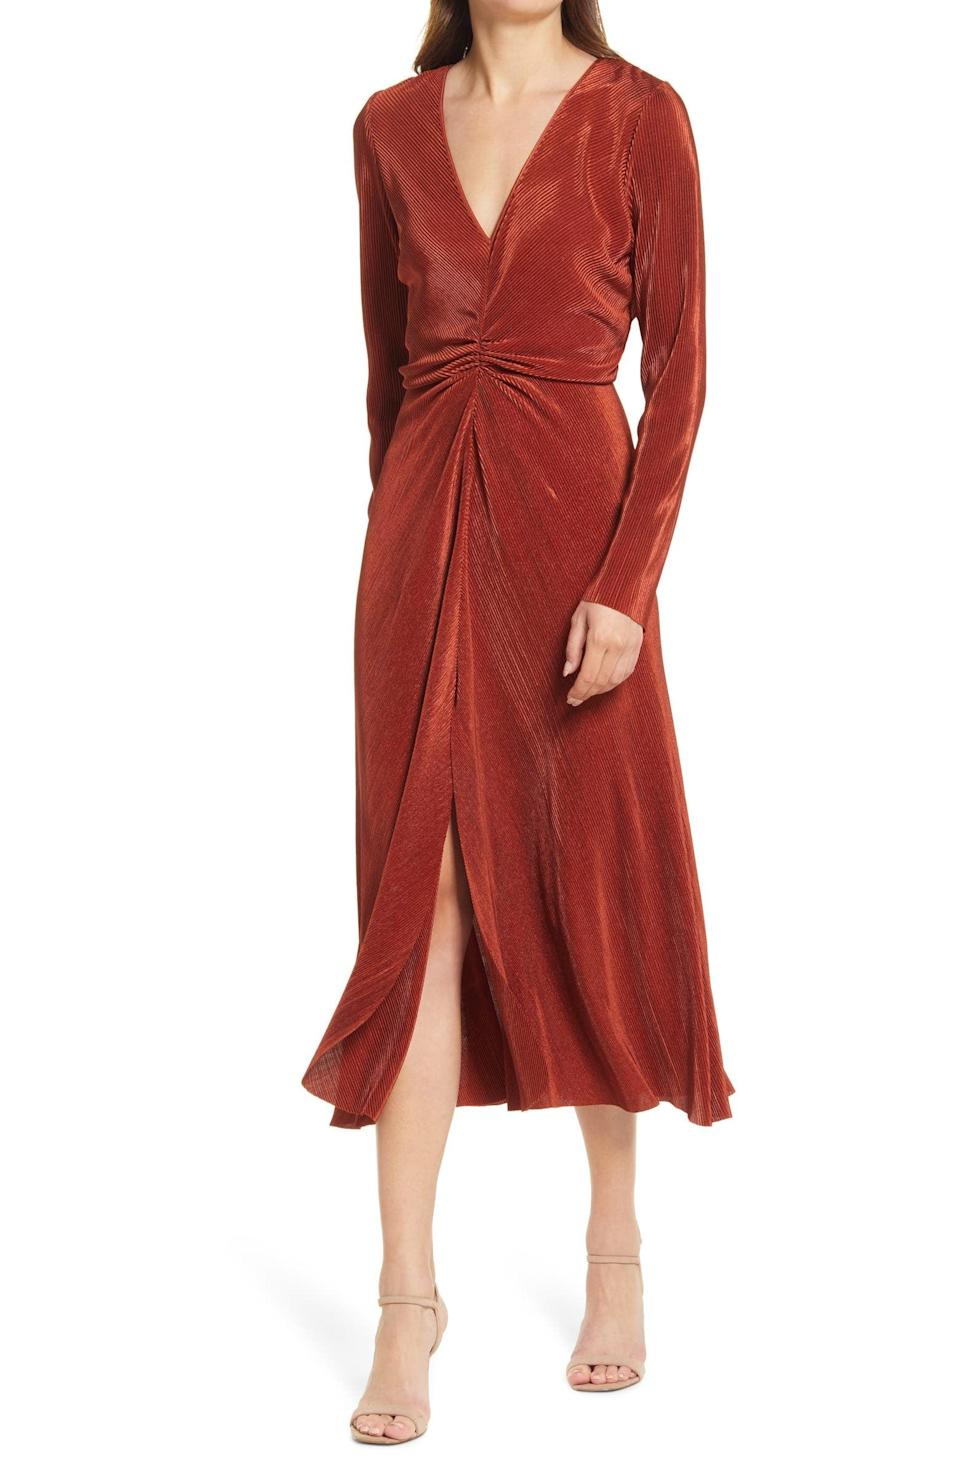 <p>This chic <span>Charles Henry Gathered Long Sleeve A-Line Dress</span> ($79) is a lovely choice for any events or dinners you have coming up. The rust hue is universally flattering on all skin tones.</p>